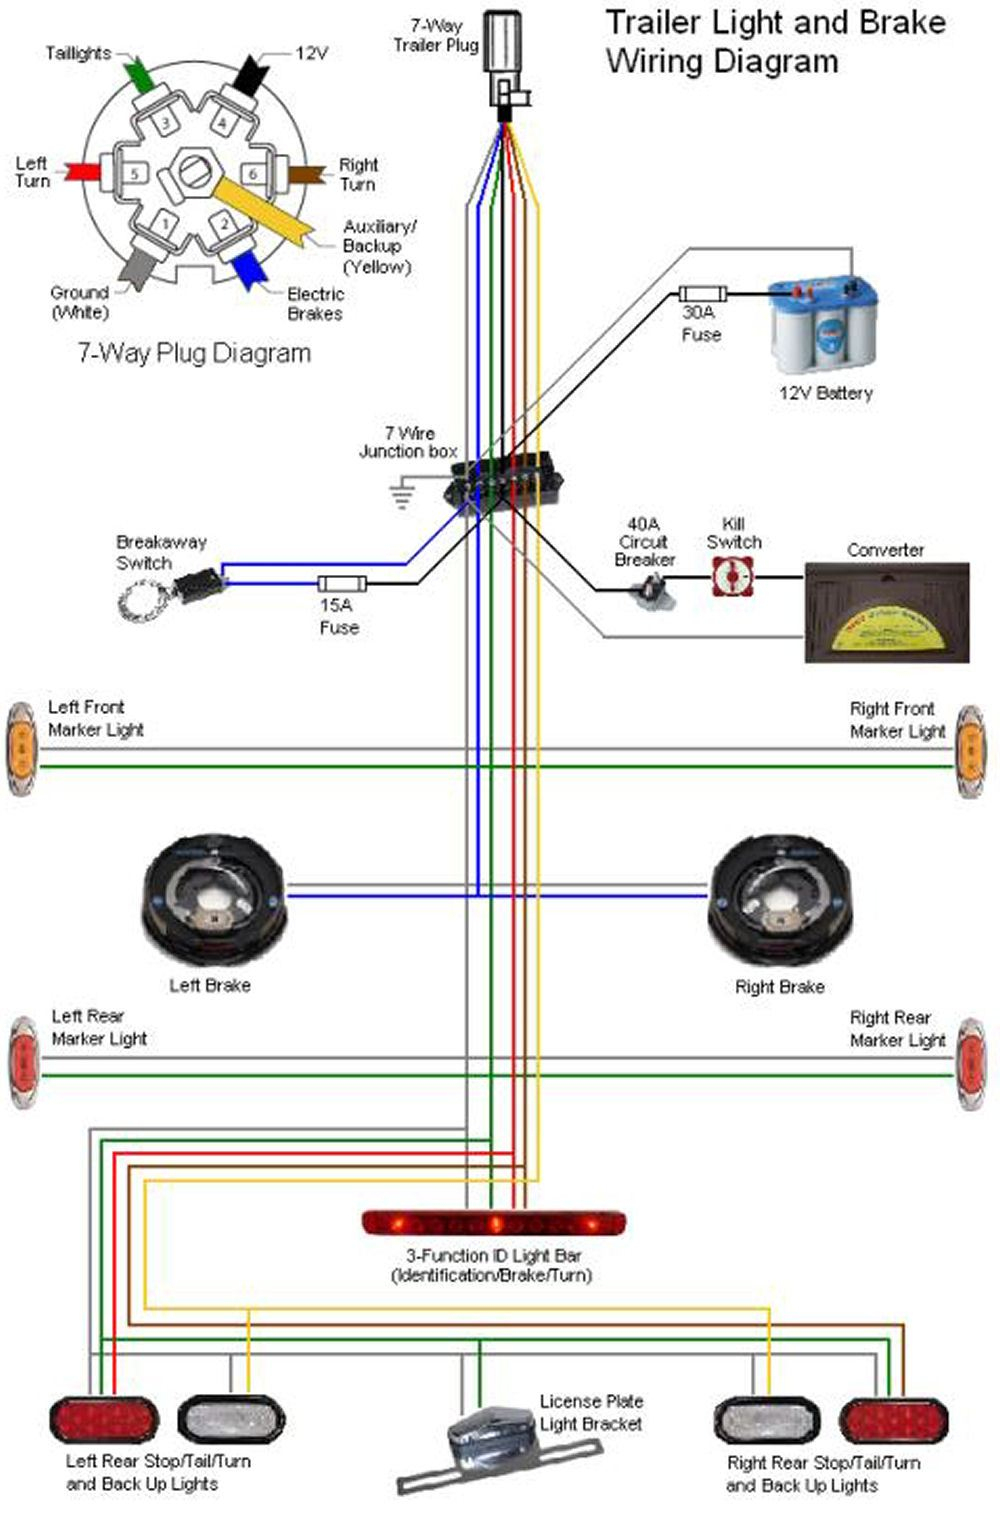 Semi Trailer Wiring Diagram - 9.xeghaqqt.petportal.info • on tractor-trailer wiring diagram, semi tractor-trailer parts diagram, semi 7 pin trailer plug, semi-trailer tail light wiring diagram,